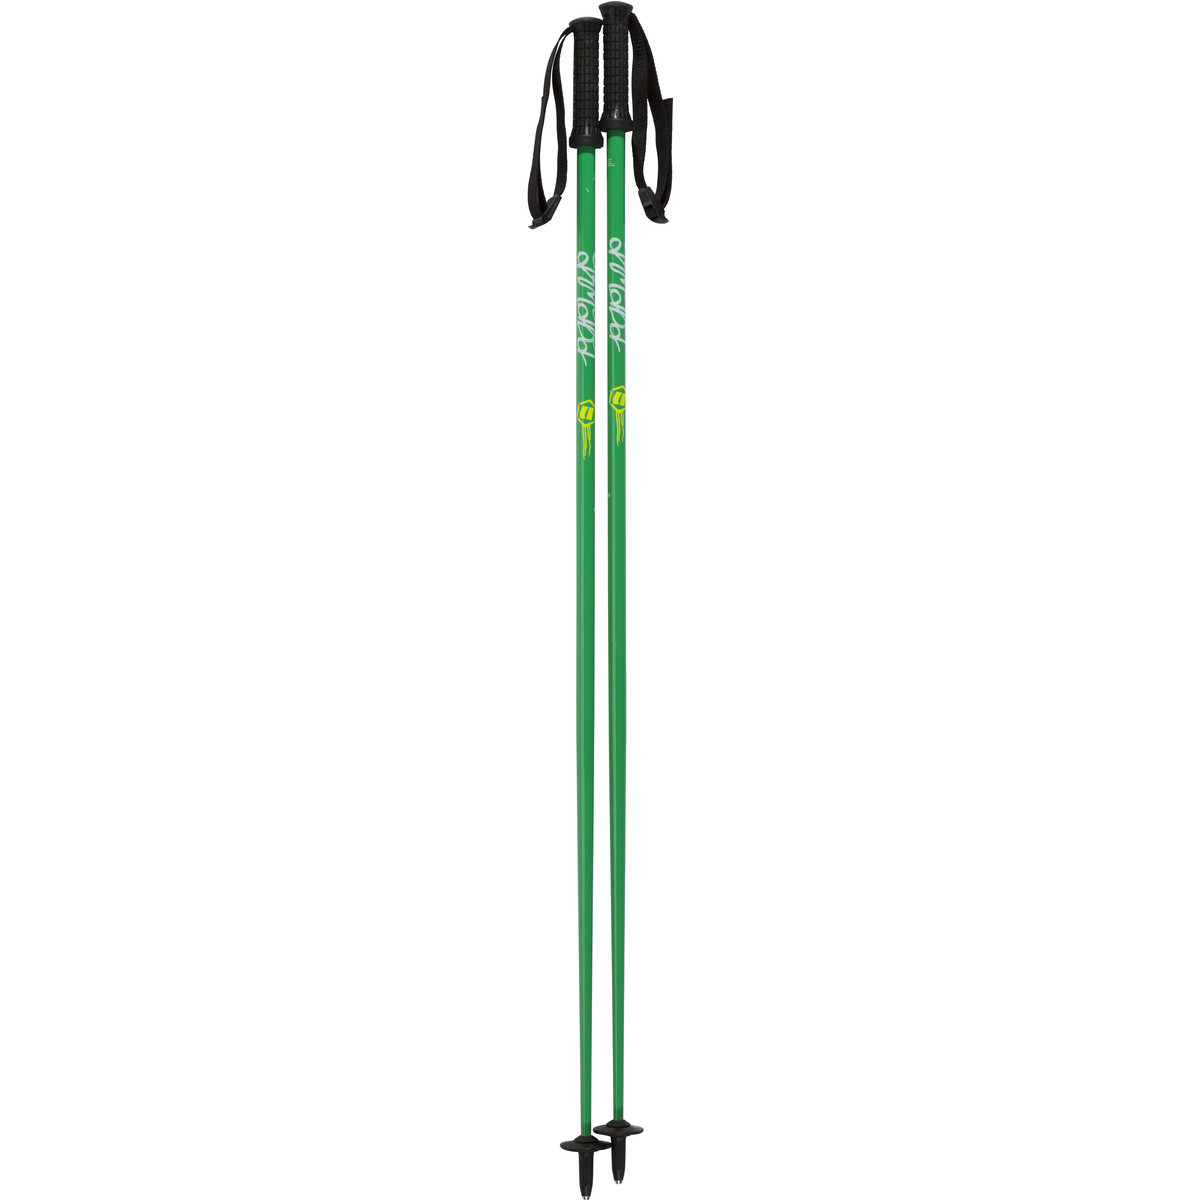 Armada Motive Ski Pole